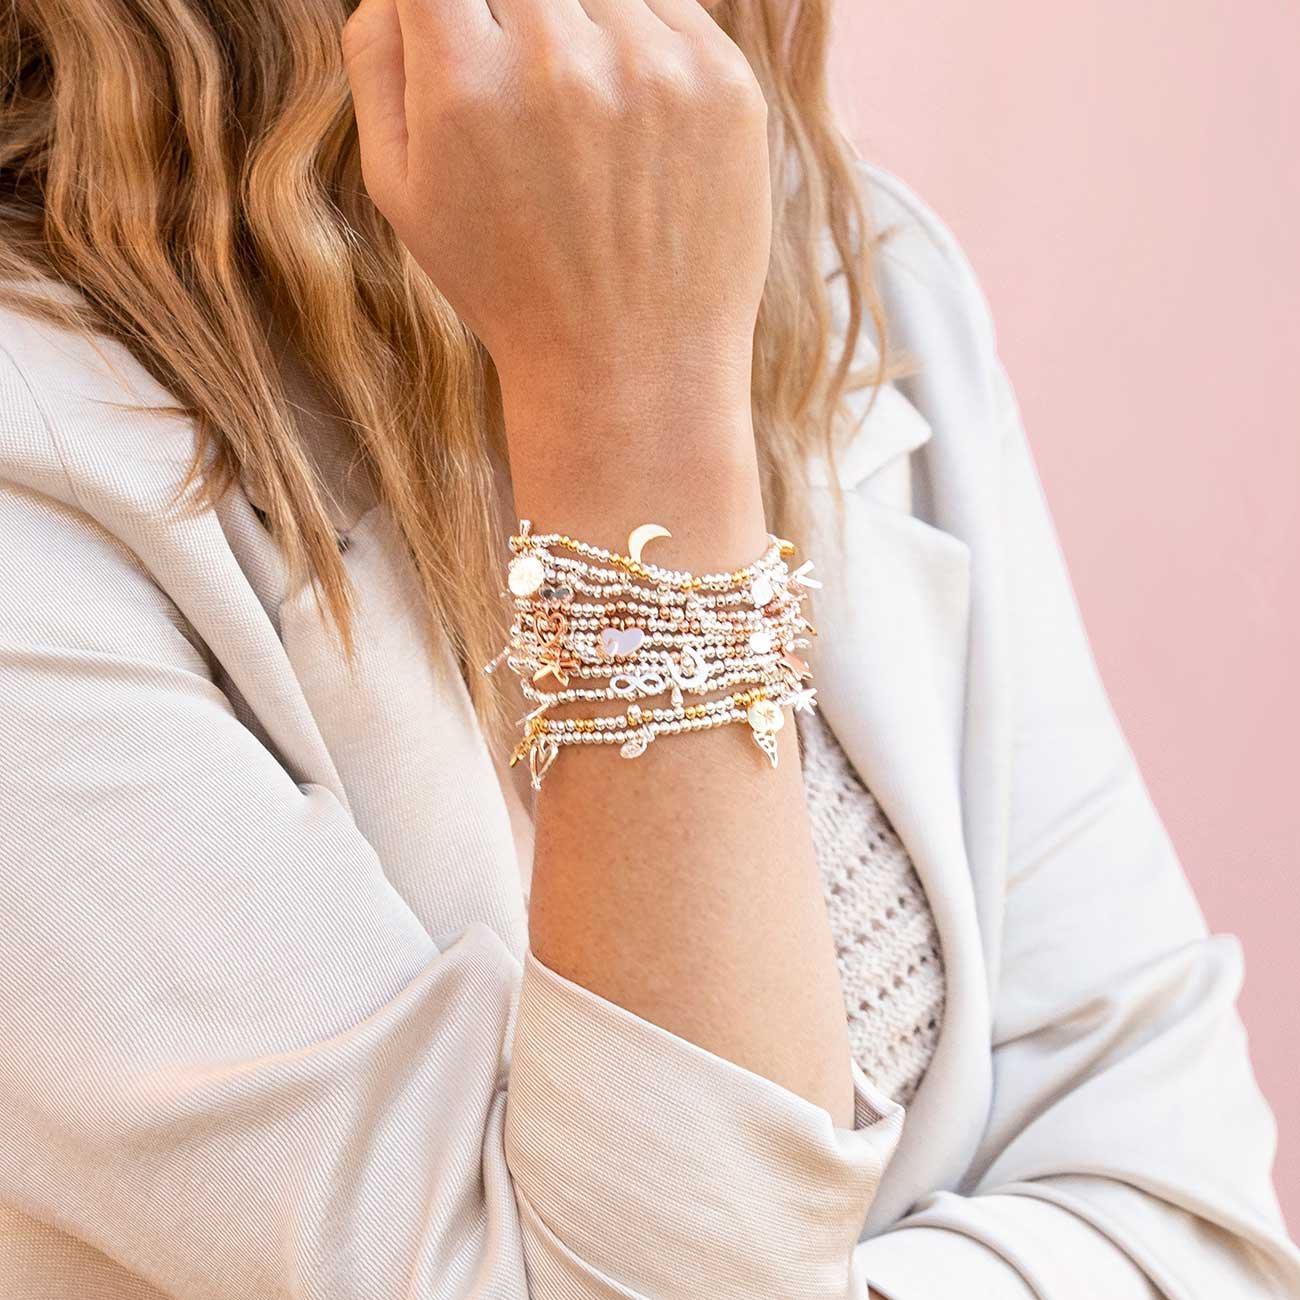 Joma Jewellery Life's A Charm Bracelet Forever Friends